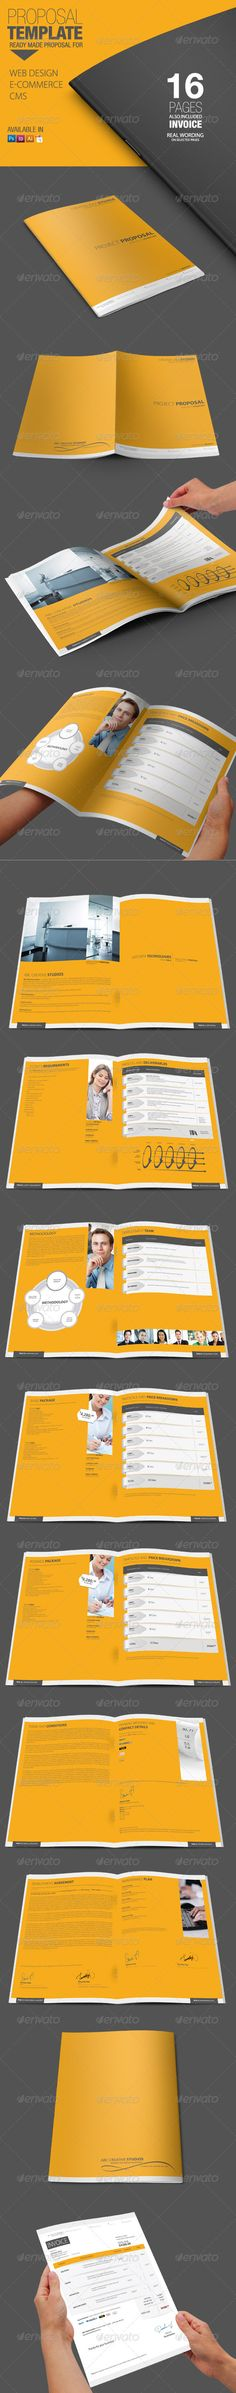 Business Proposal Proposals, Stationery and Business - it proposal template